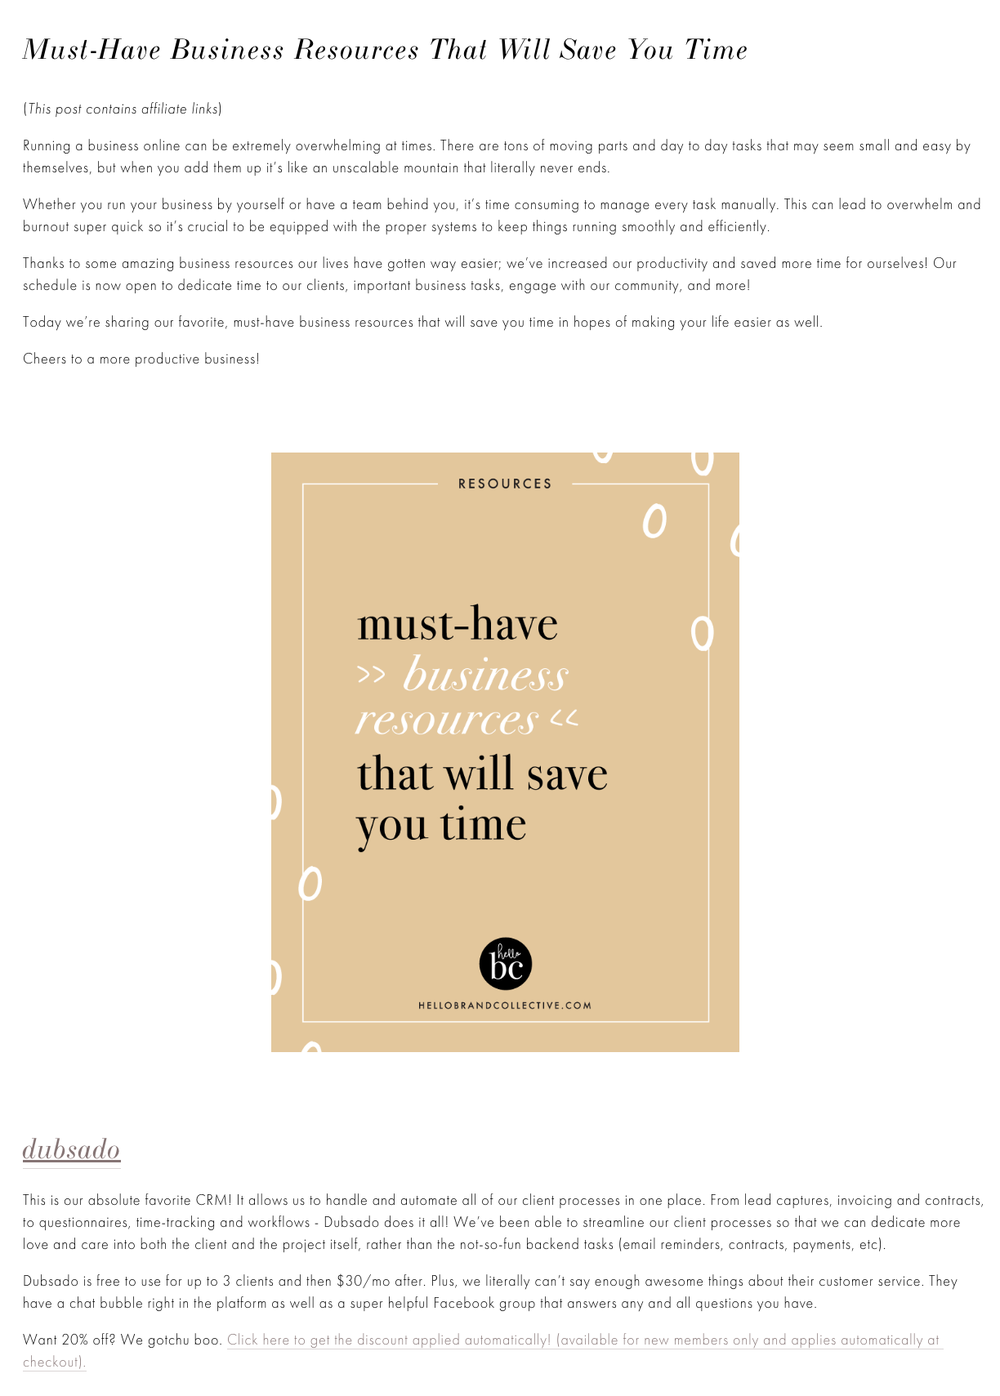 screencapture-hellobrandcollective-blog-business-resources-that-save-time-2018-10-30-13_01_17 copy0.png